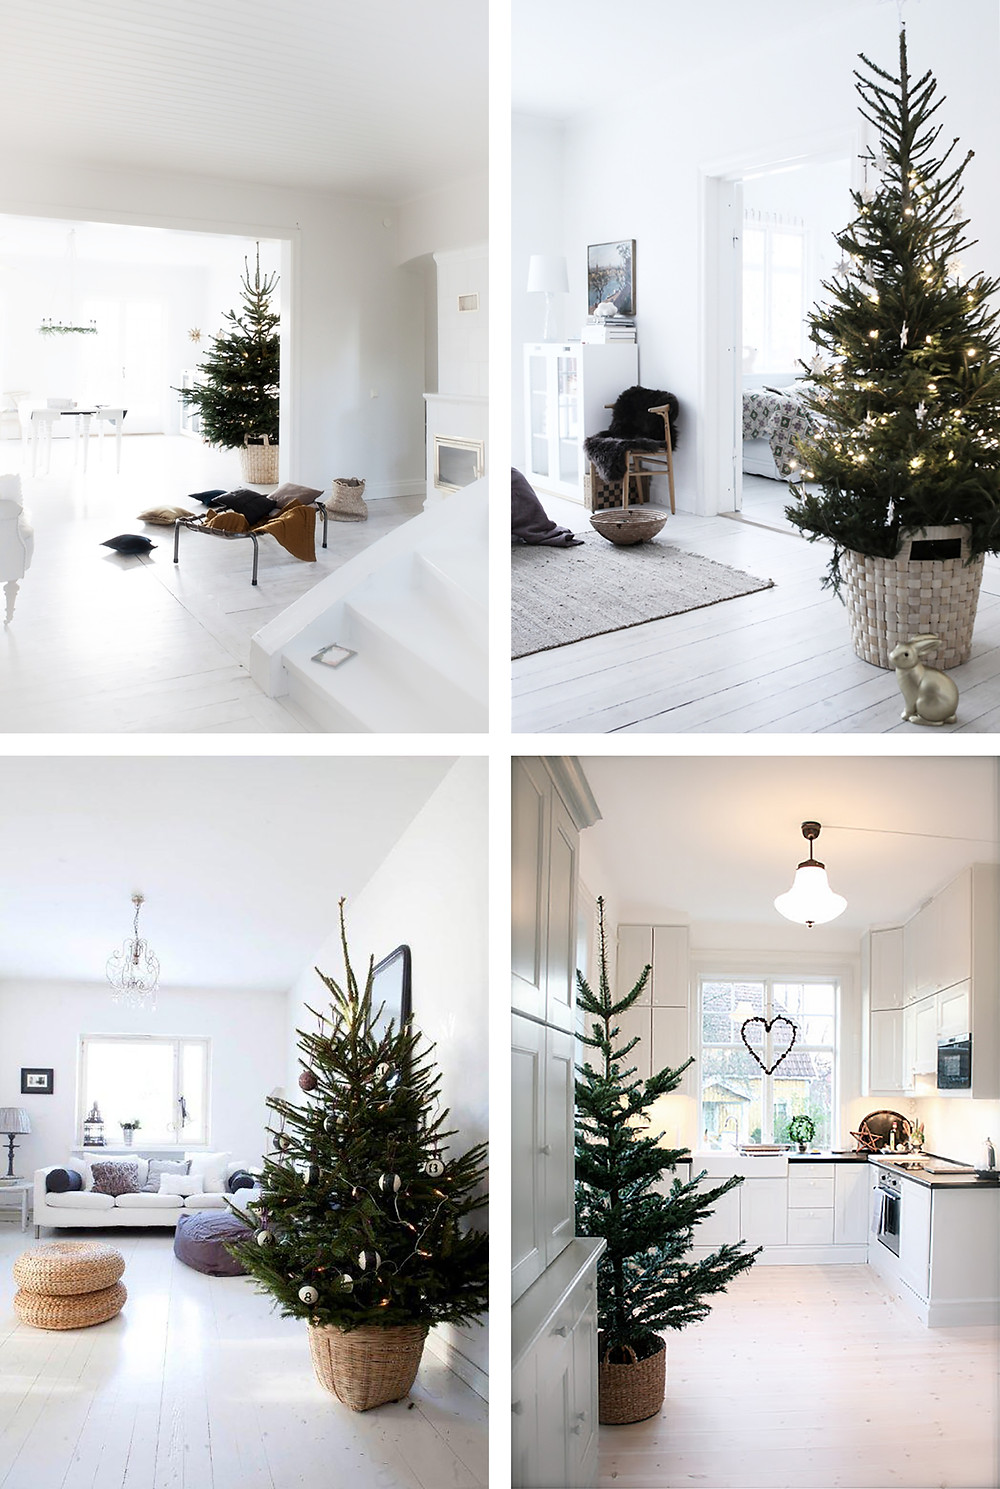 A Christmas tree sitting in a wicker basket in a white living room for the Christmas holidays is decorated in a Scandinavian nordic style.